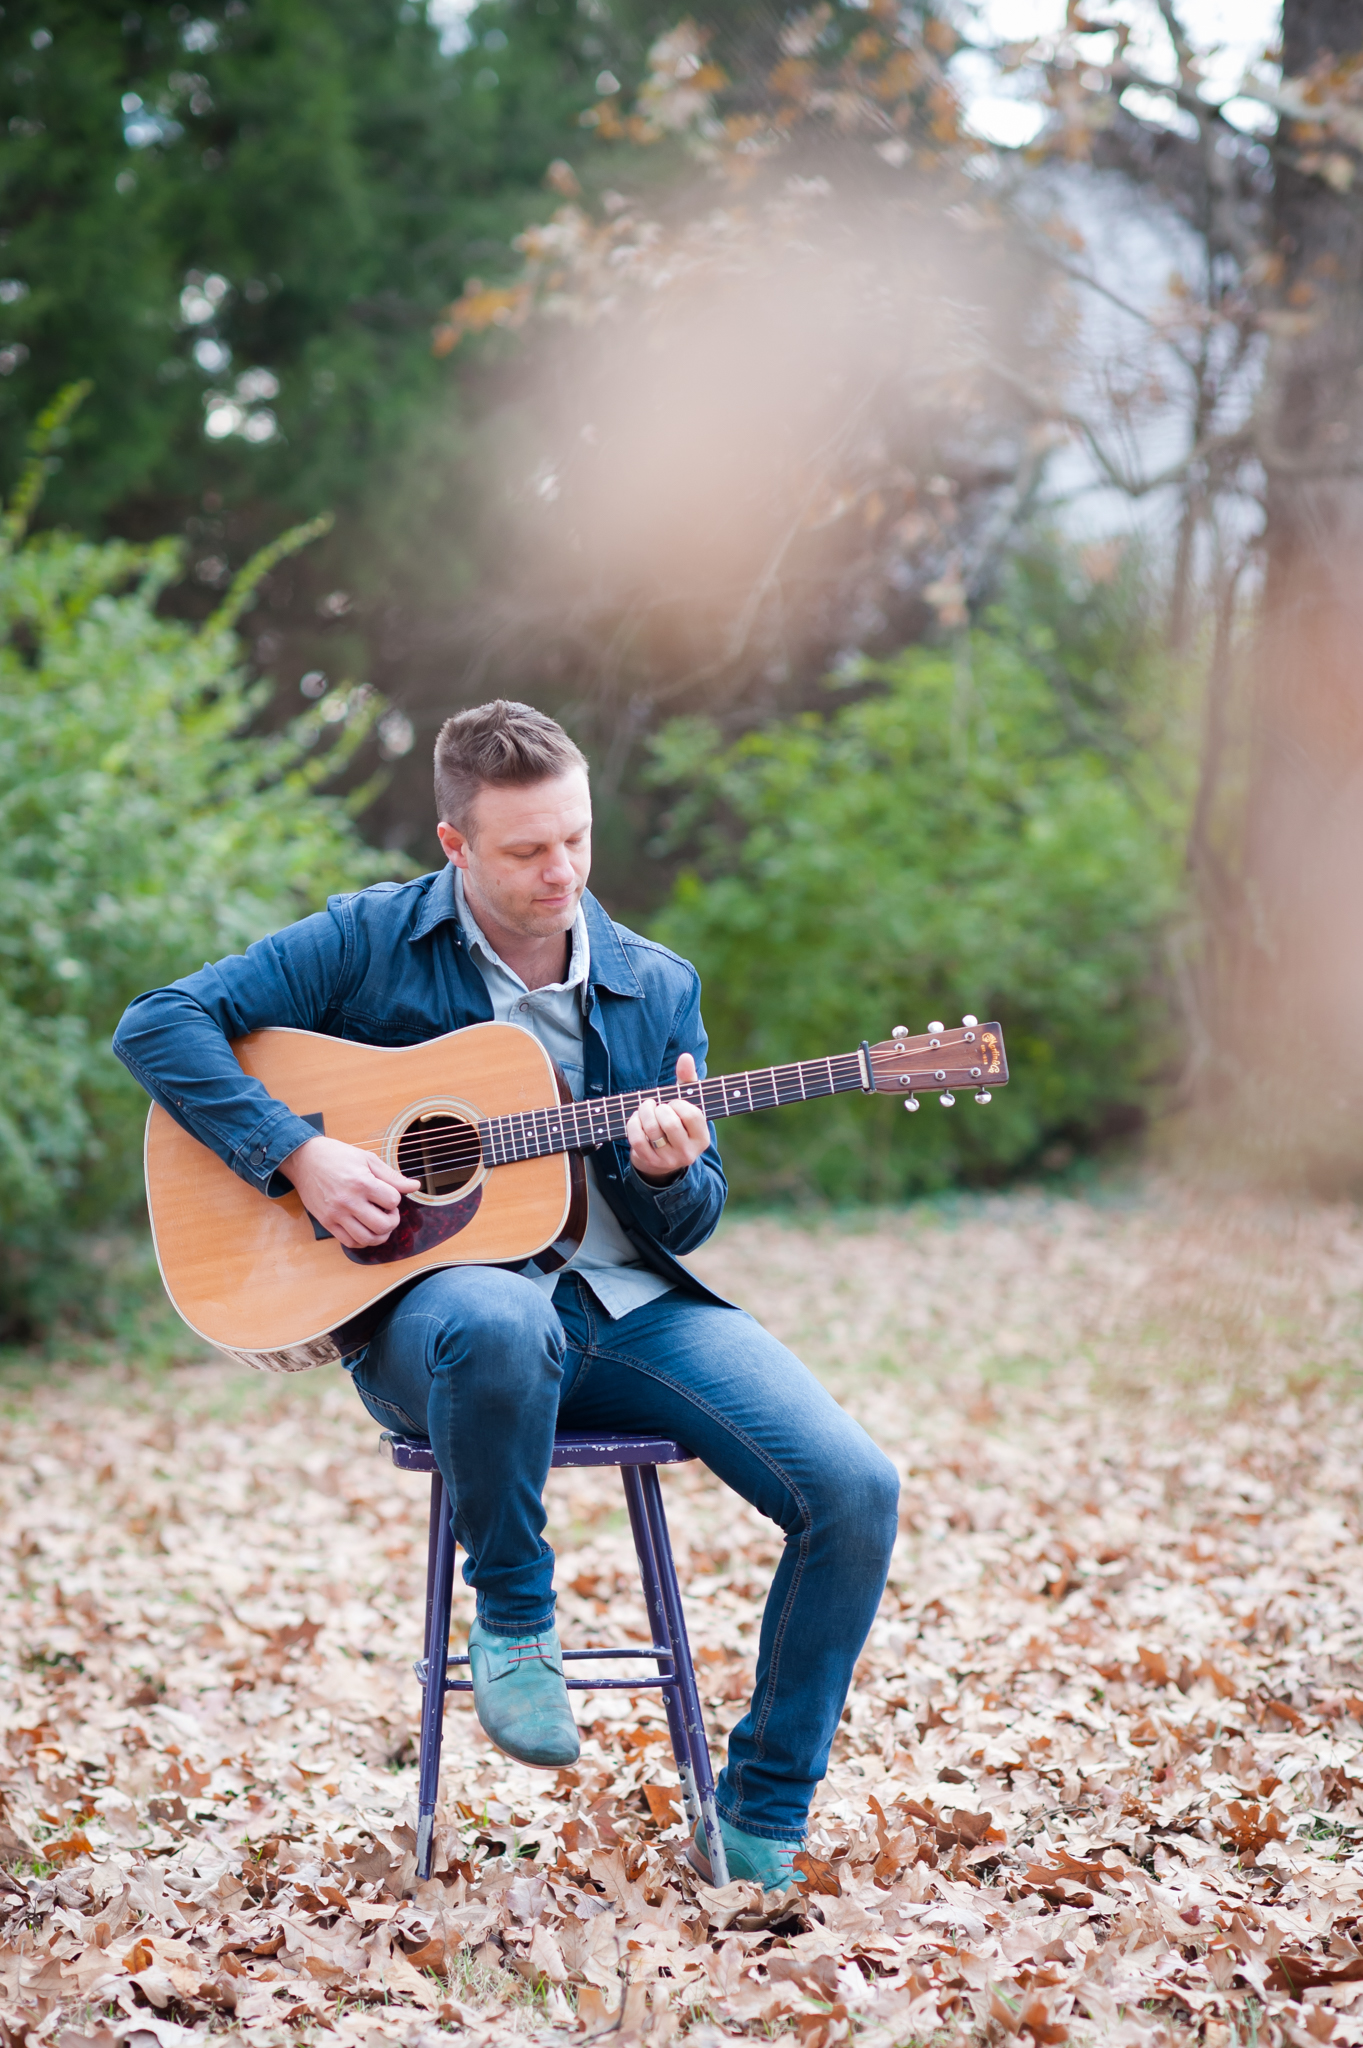 Shane Key sits on a stool in the leaves playing the guitar.